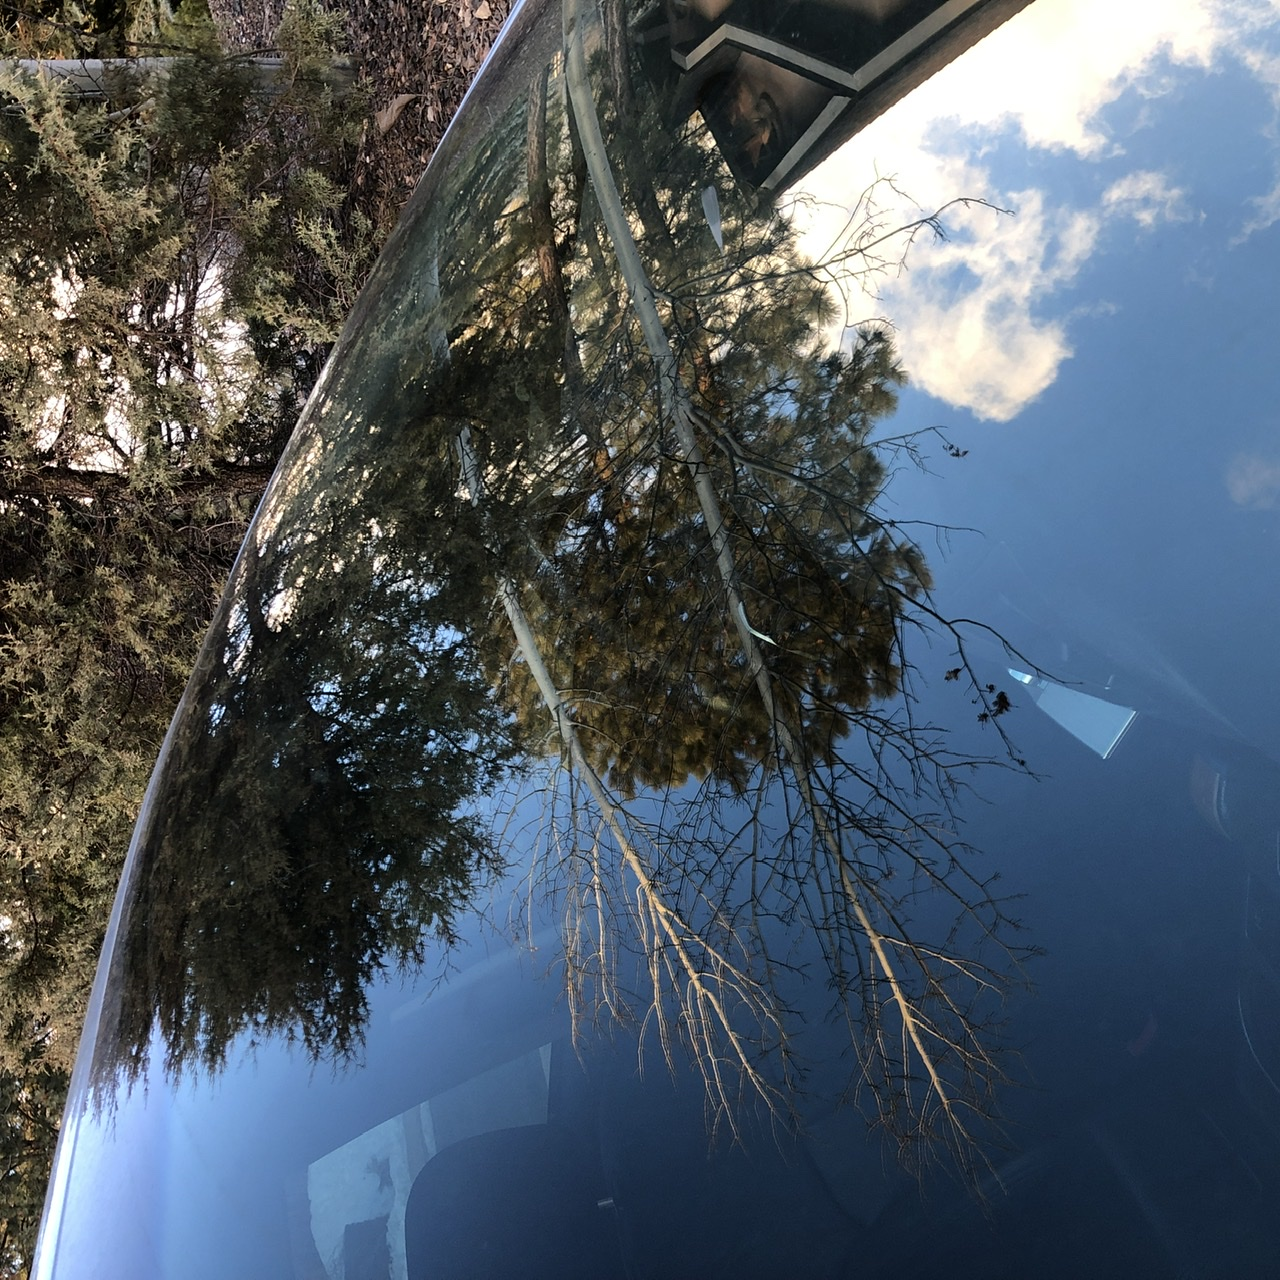 Trees with sunrise light reflected in a windshield